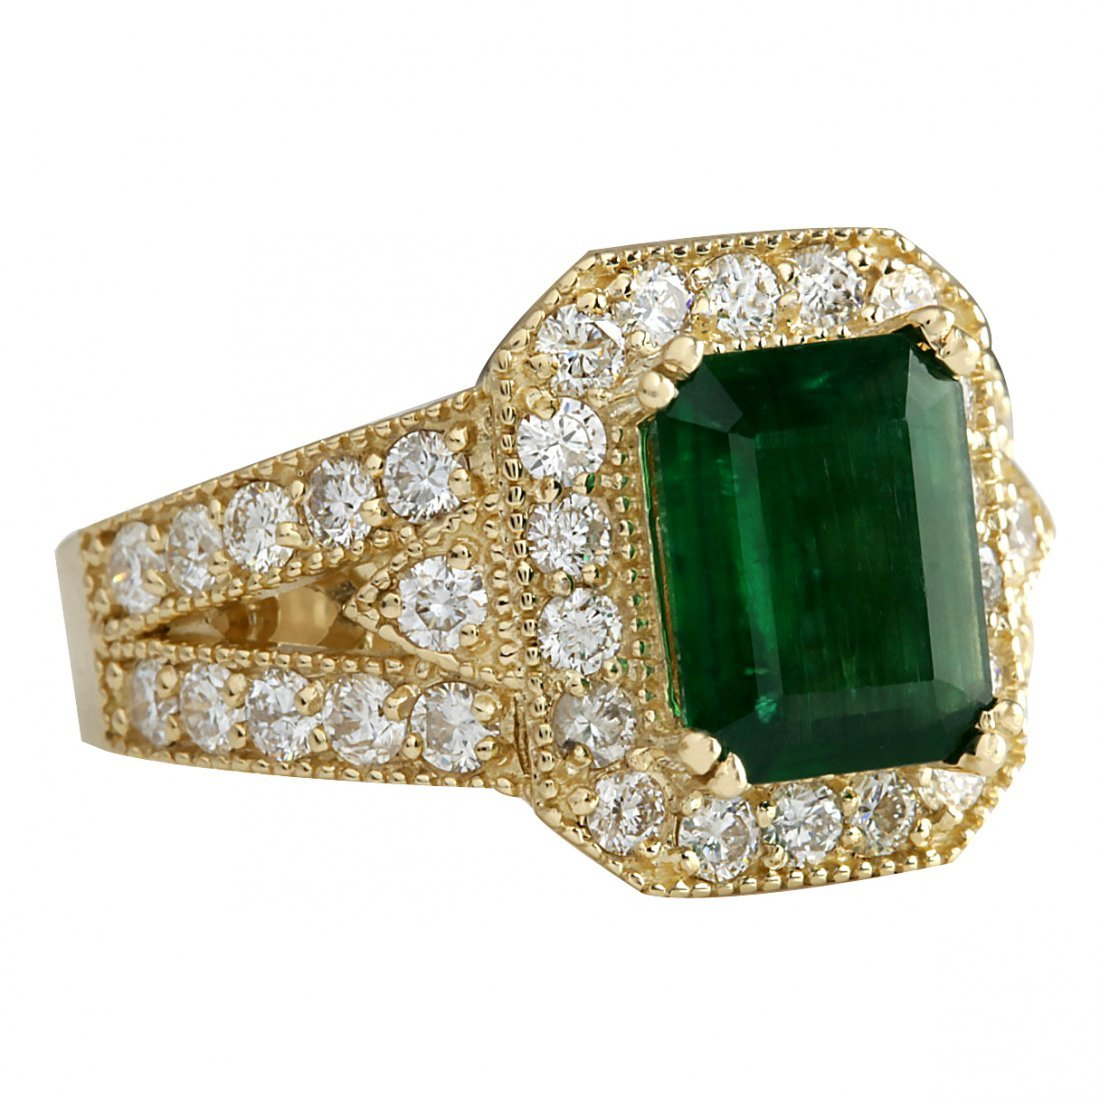 3.29CTW Natural Emerald And Diamond Ring 14K Solid - 2